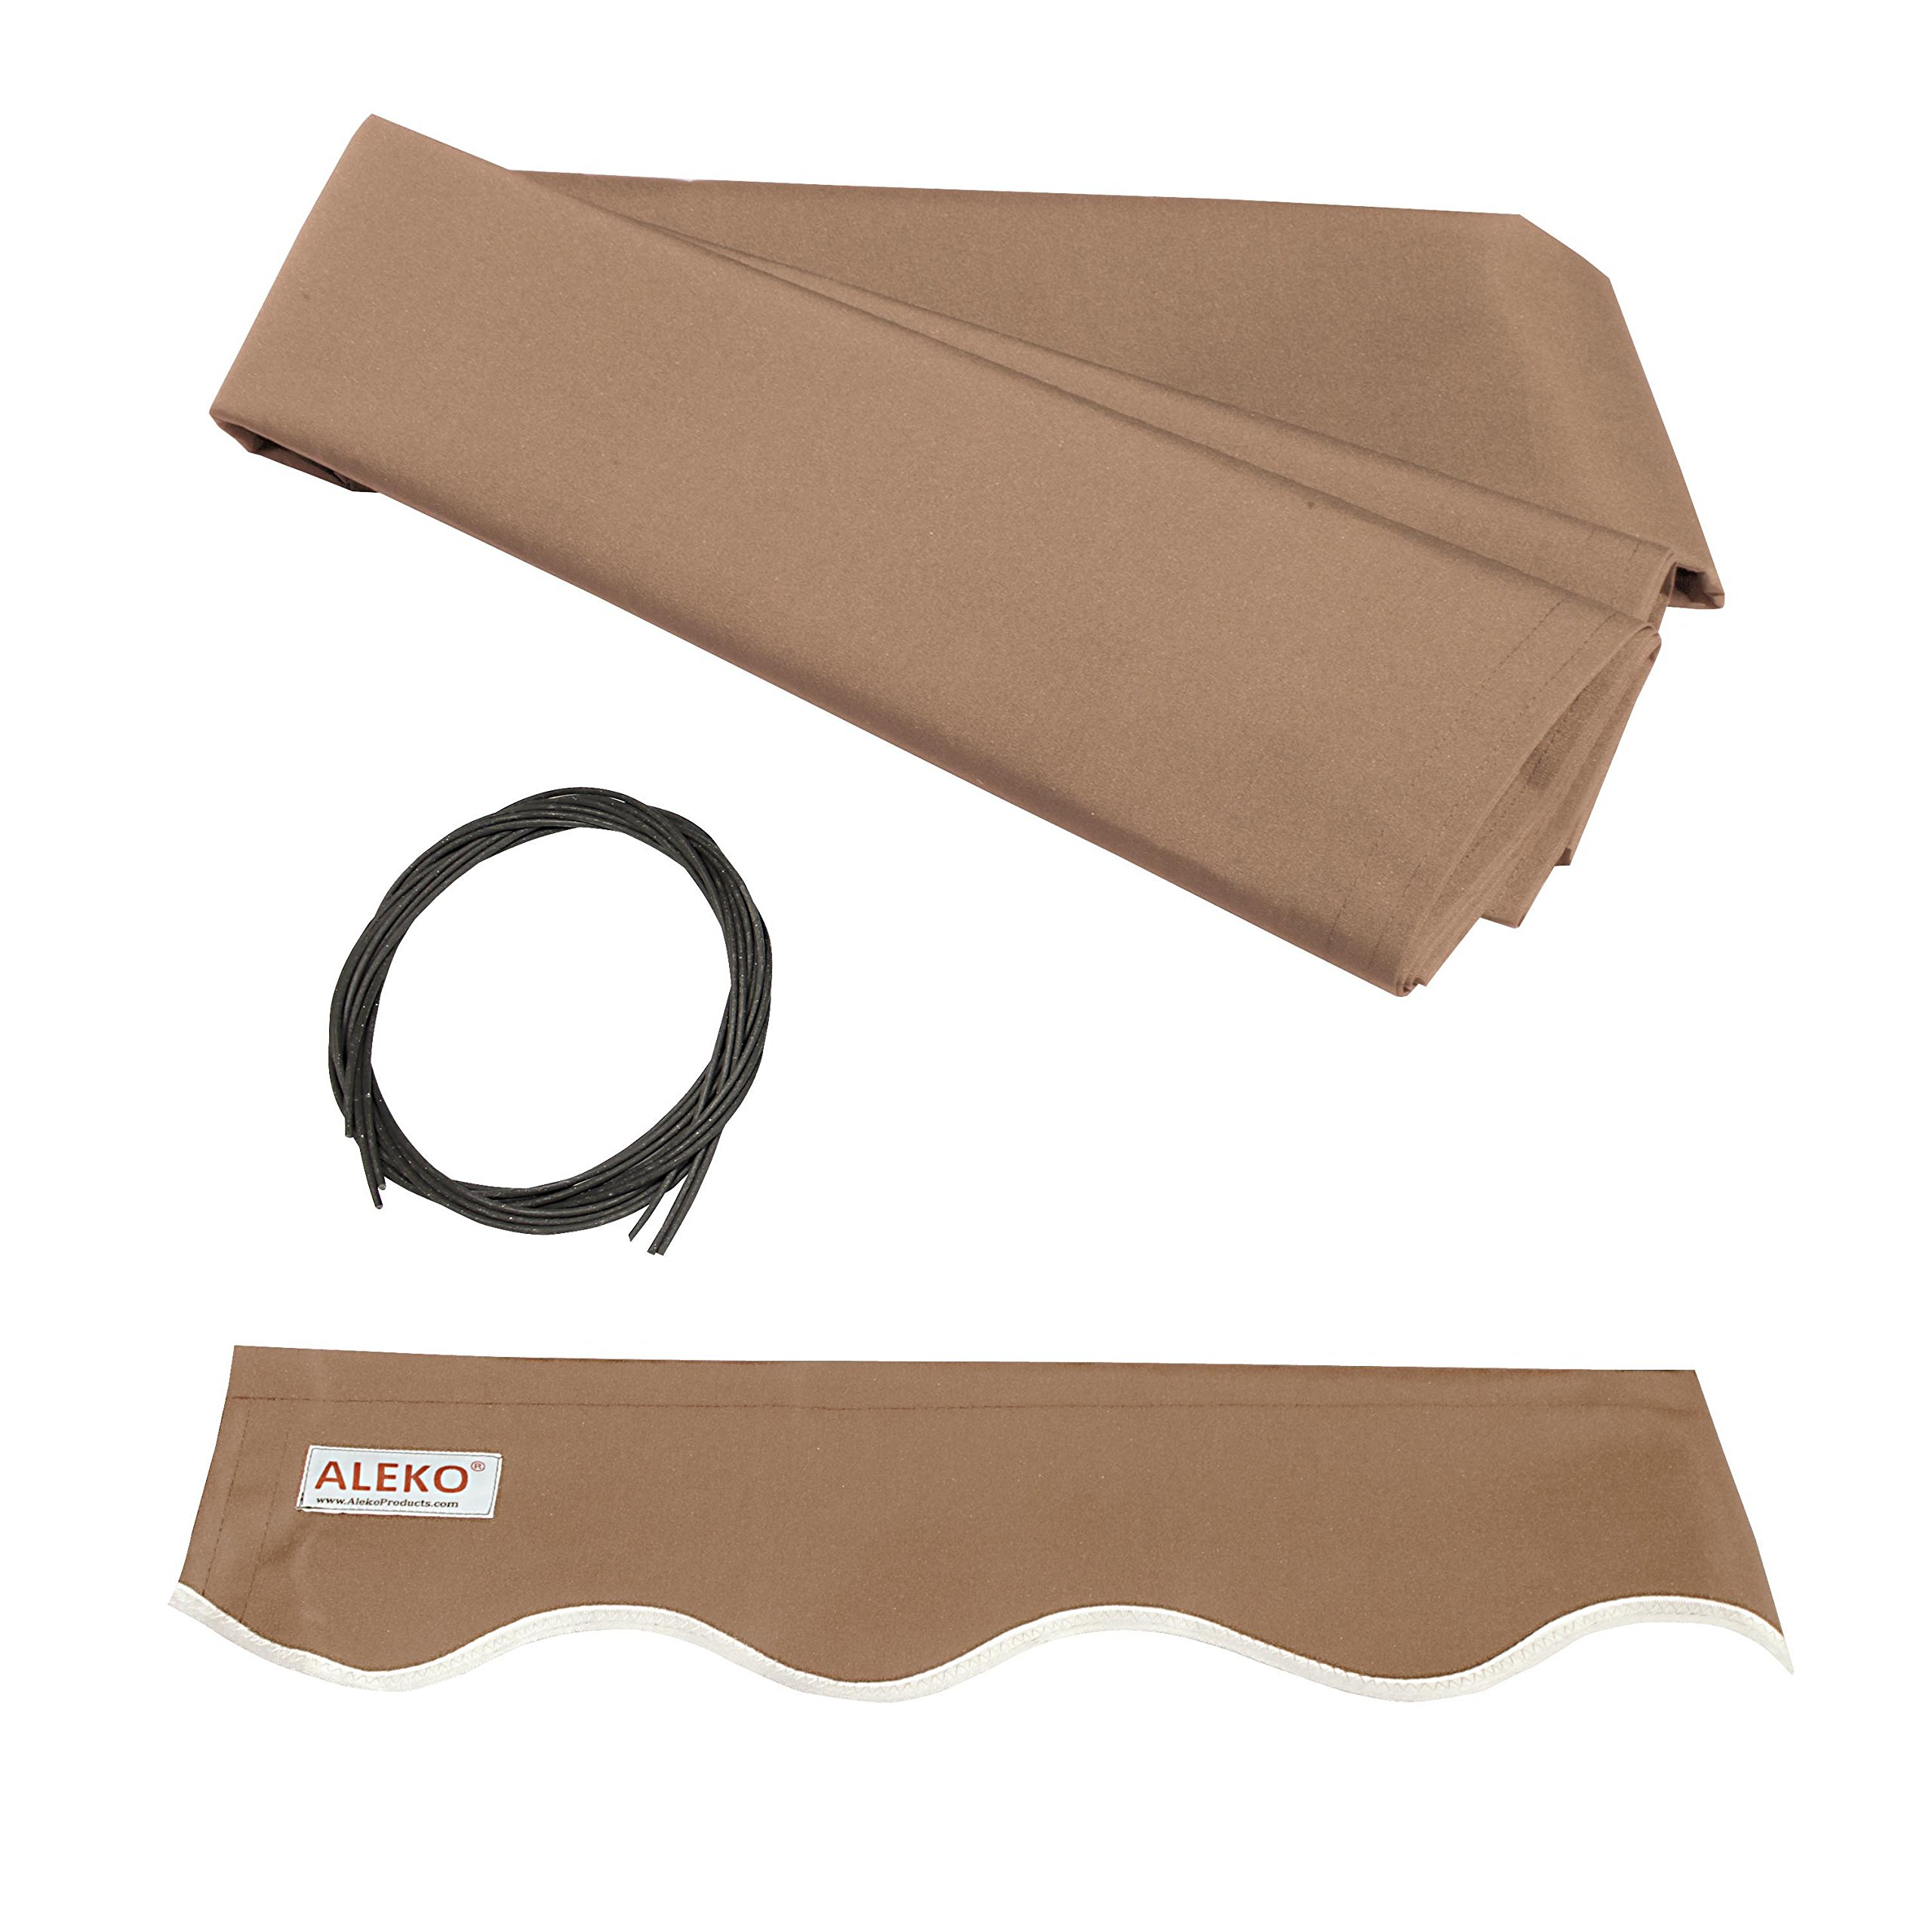 ALEKO FAB12X10SAND31 Retractable Awning Fabric Replacement 12 x 10 Feet Sand by ALEKO